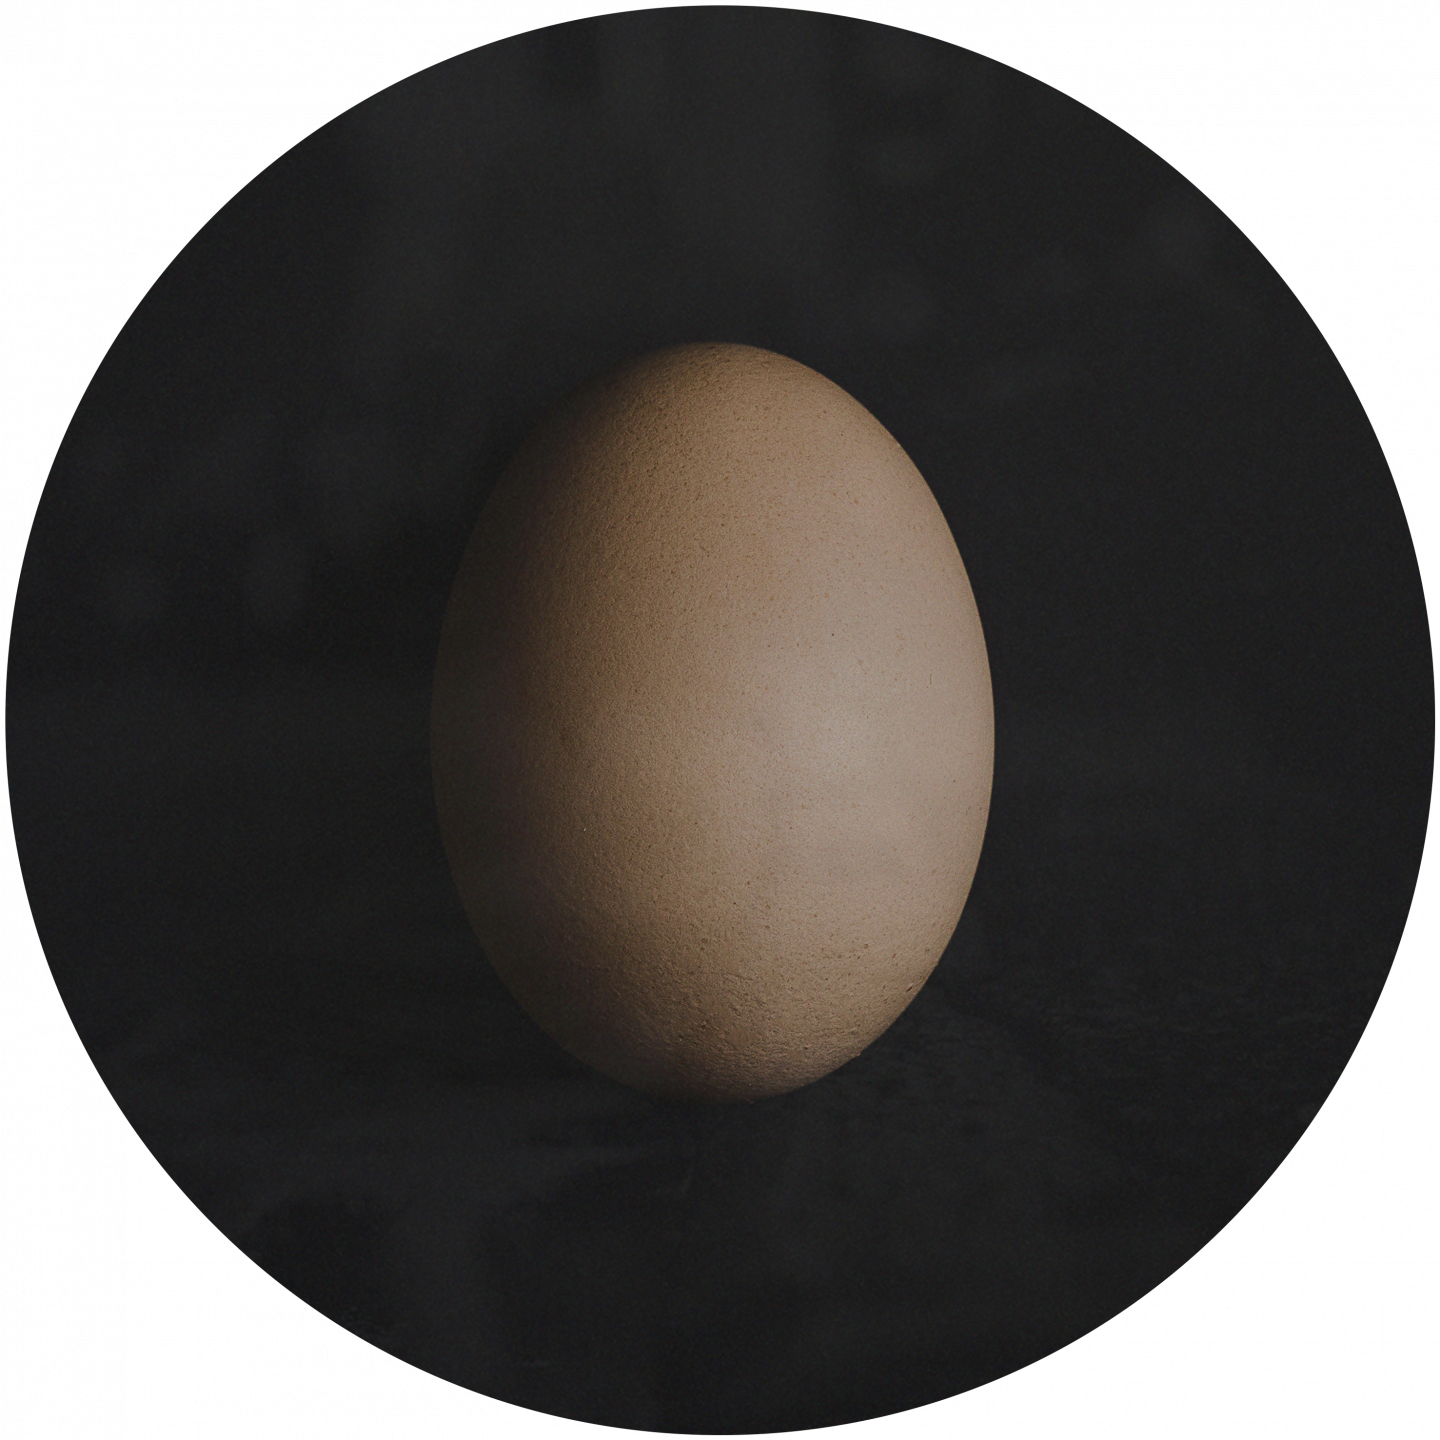 A brown egg in front of a black background. team building, team event, games, egg dropping, adidas, GamePlan A